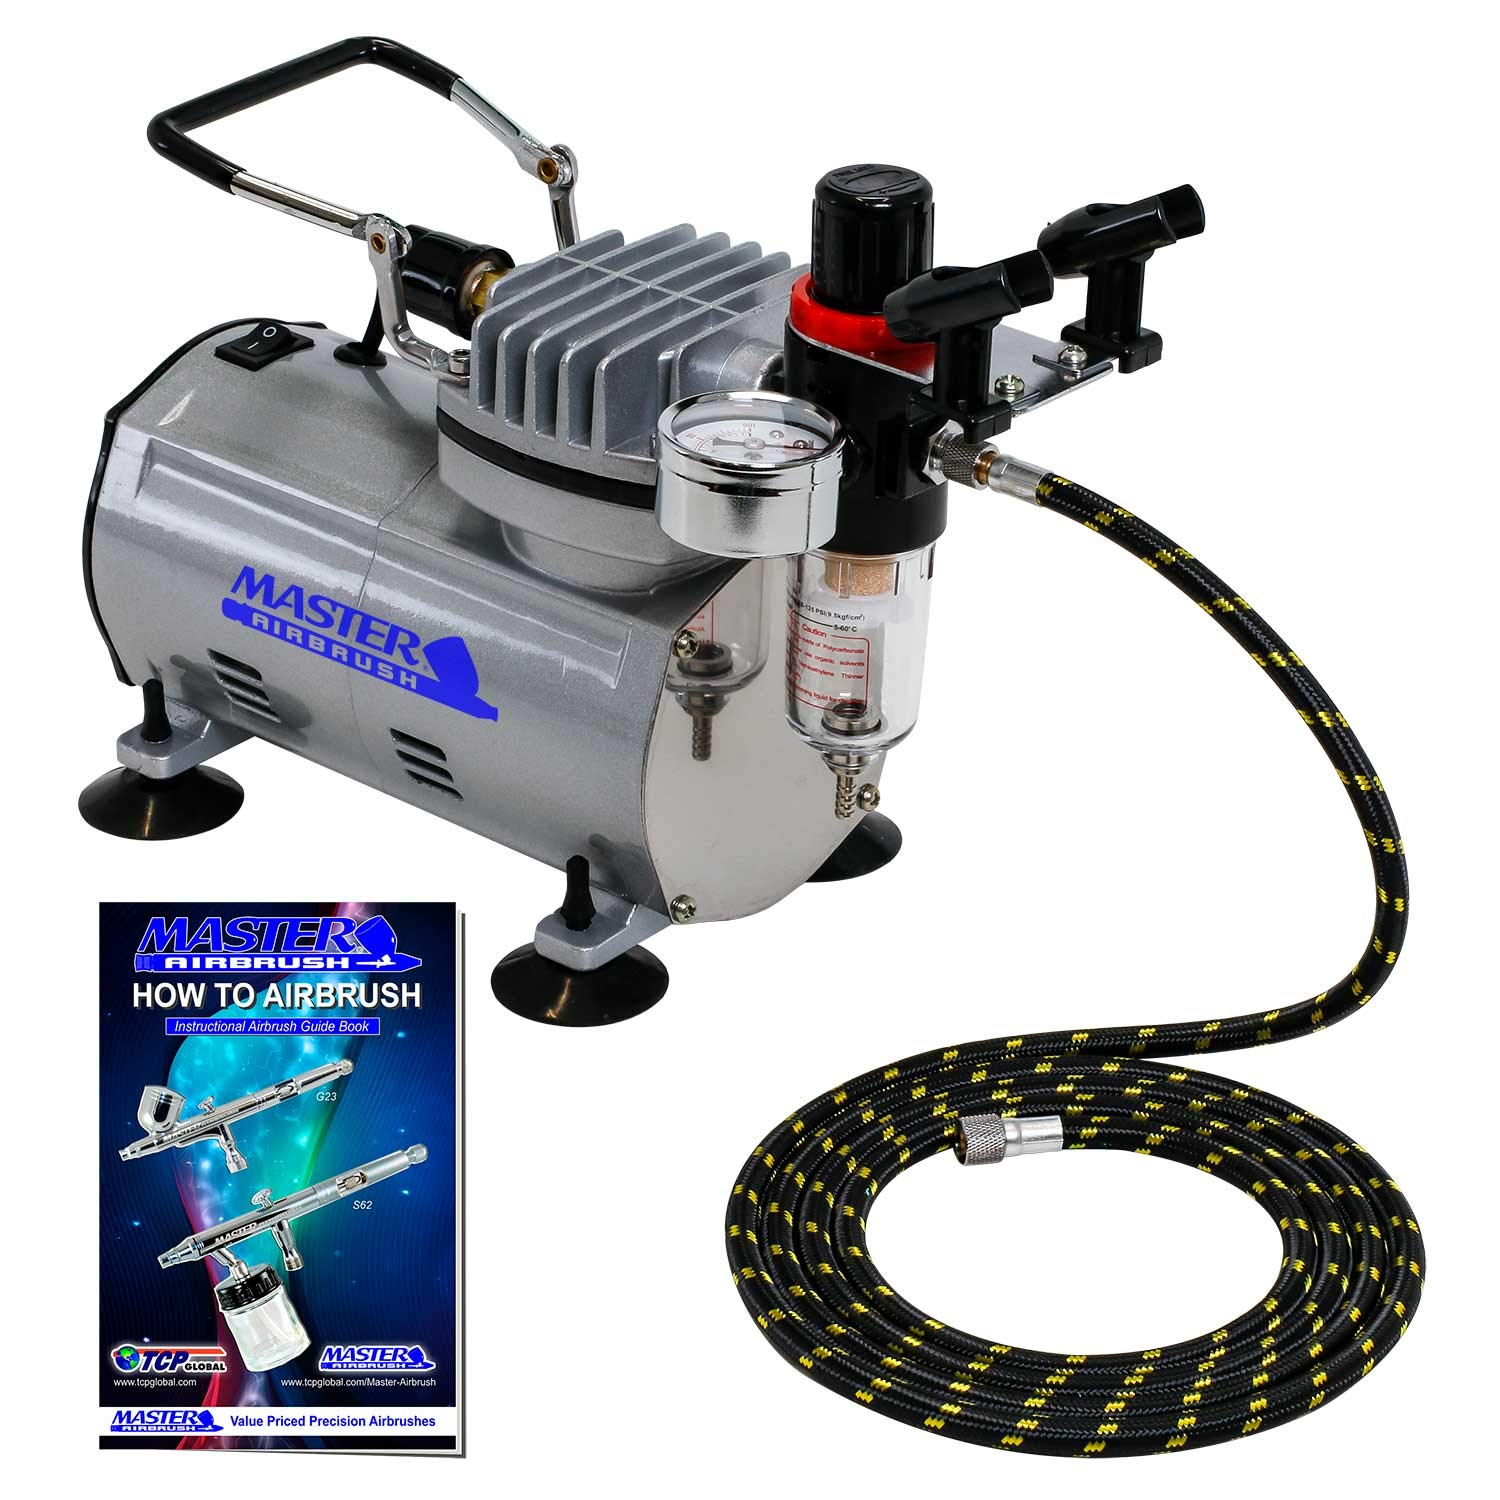 Master Airbrush Compressor with Water Trap and Regulator, Now Includes a (FREE) 6 Foot Airbrush Hose and a (FREE) How to Airbrush Training Book to Get You Started by Master Airbrush